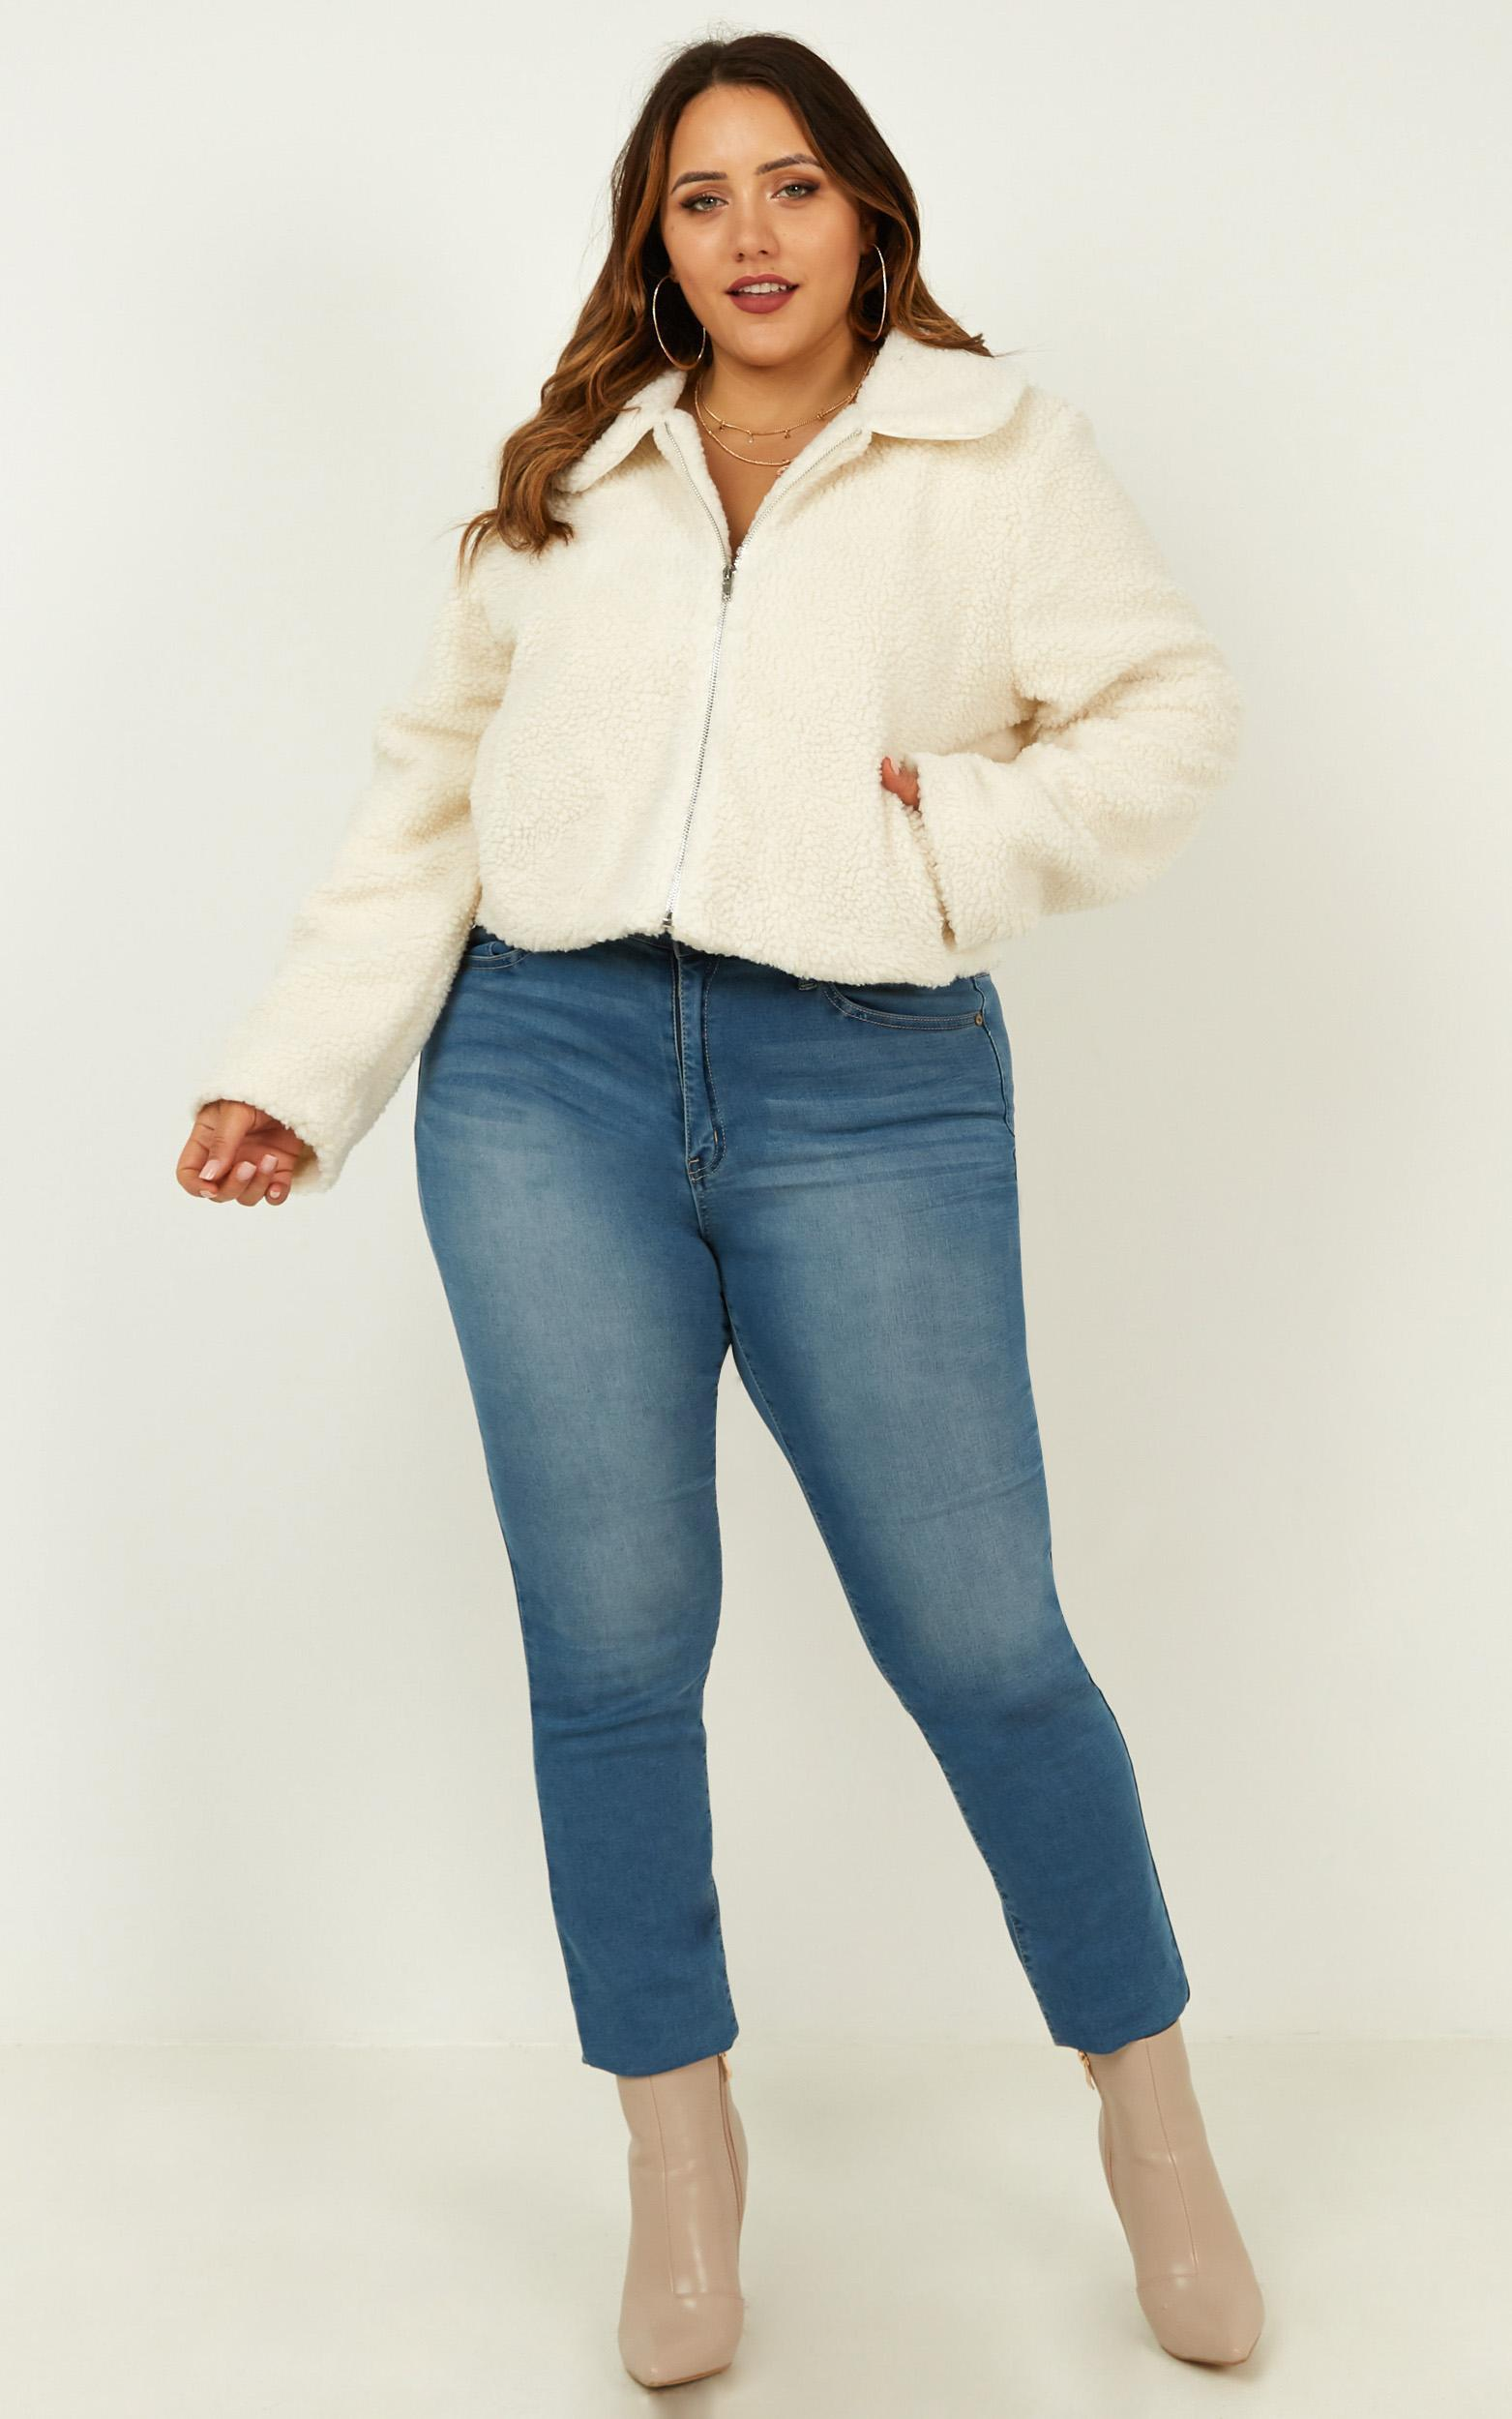 Forever Cuddling Jacket In Cream Teddy - 20 (XXXXL), Cream, hi-res image number null